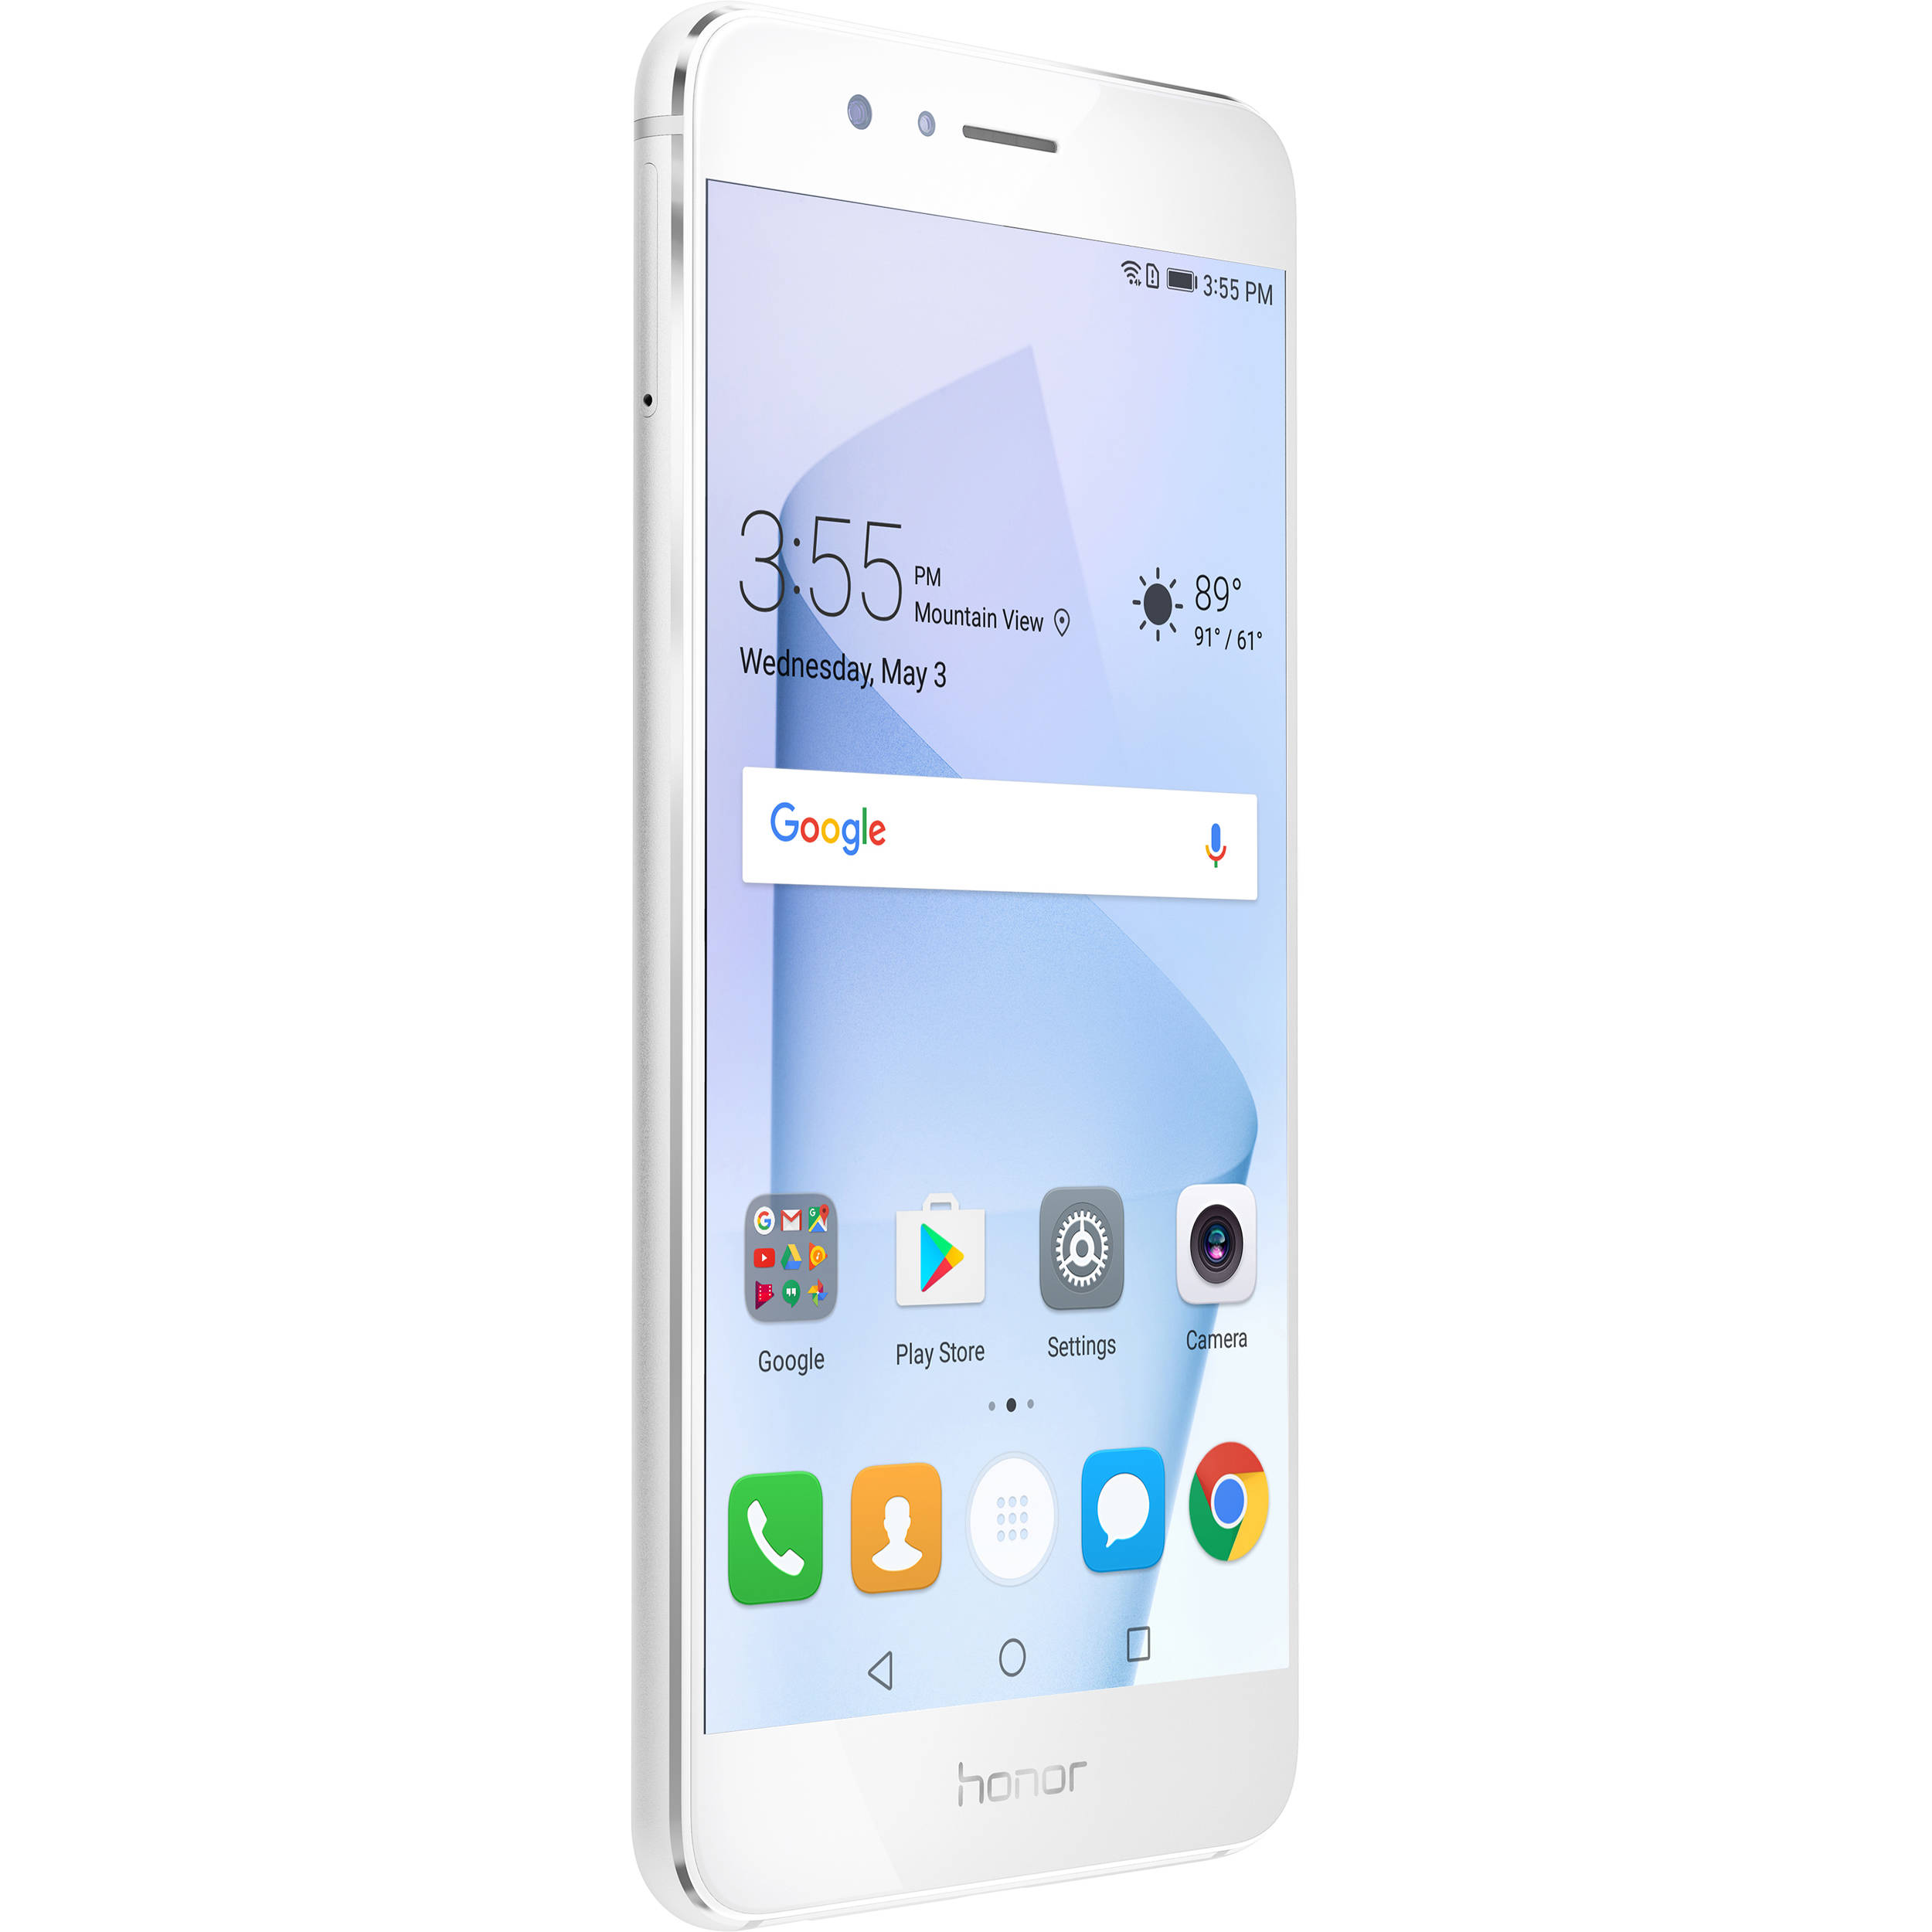 huawei honor 8. huawei honor 8 64gb smartphone (unlocked, pearl white)